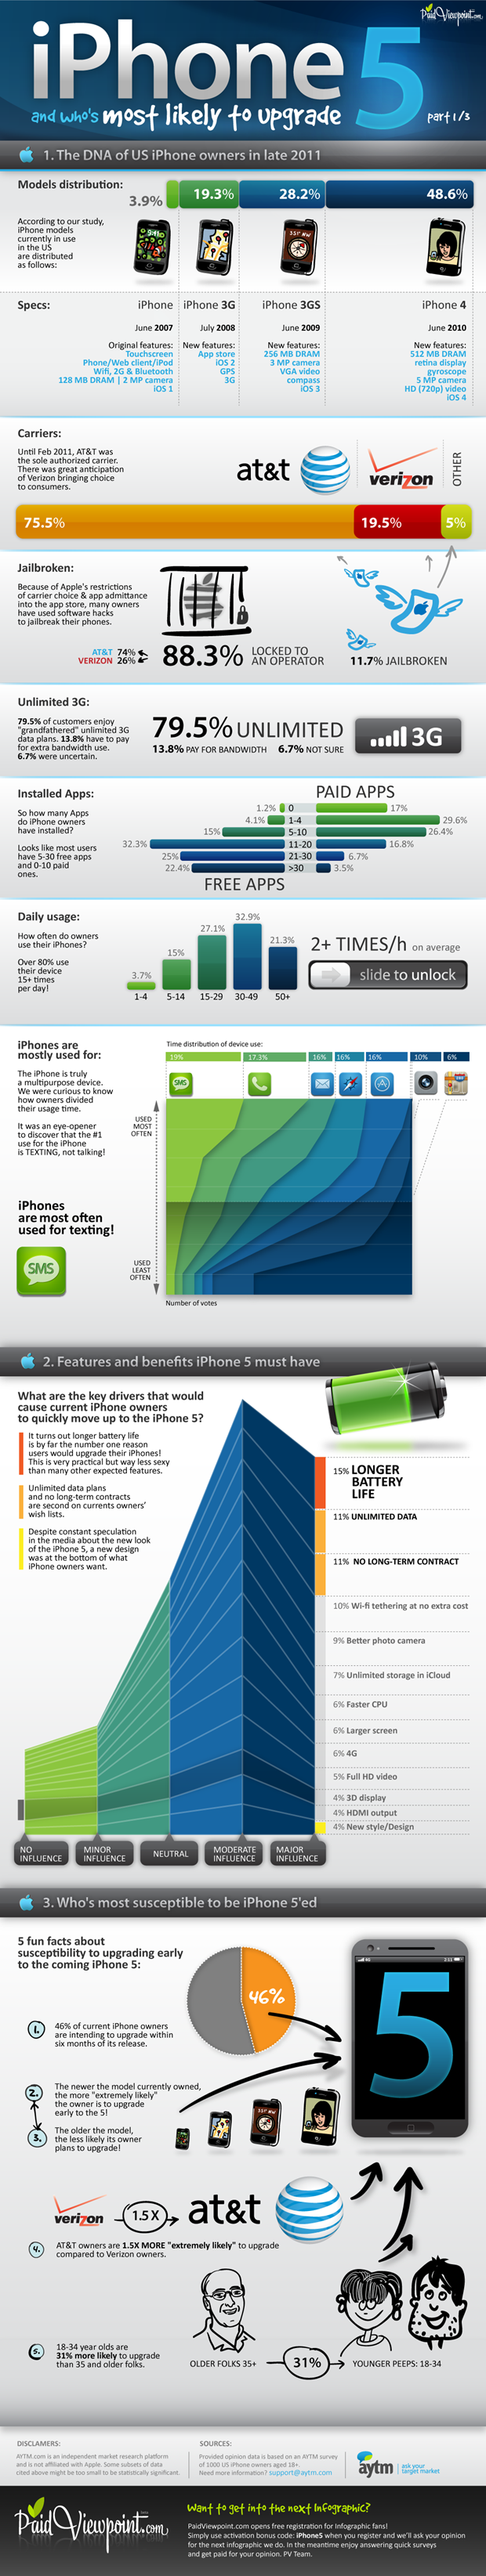 IPhone-5-infographic